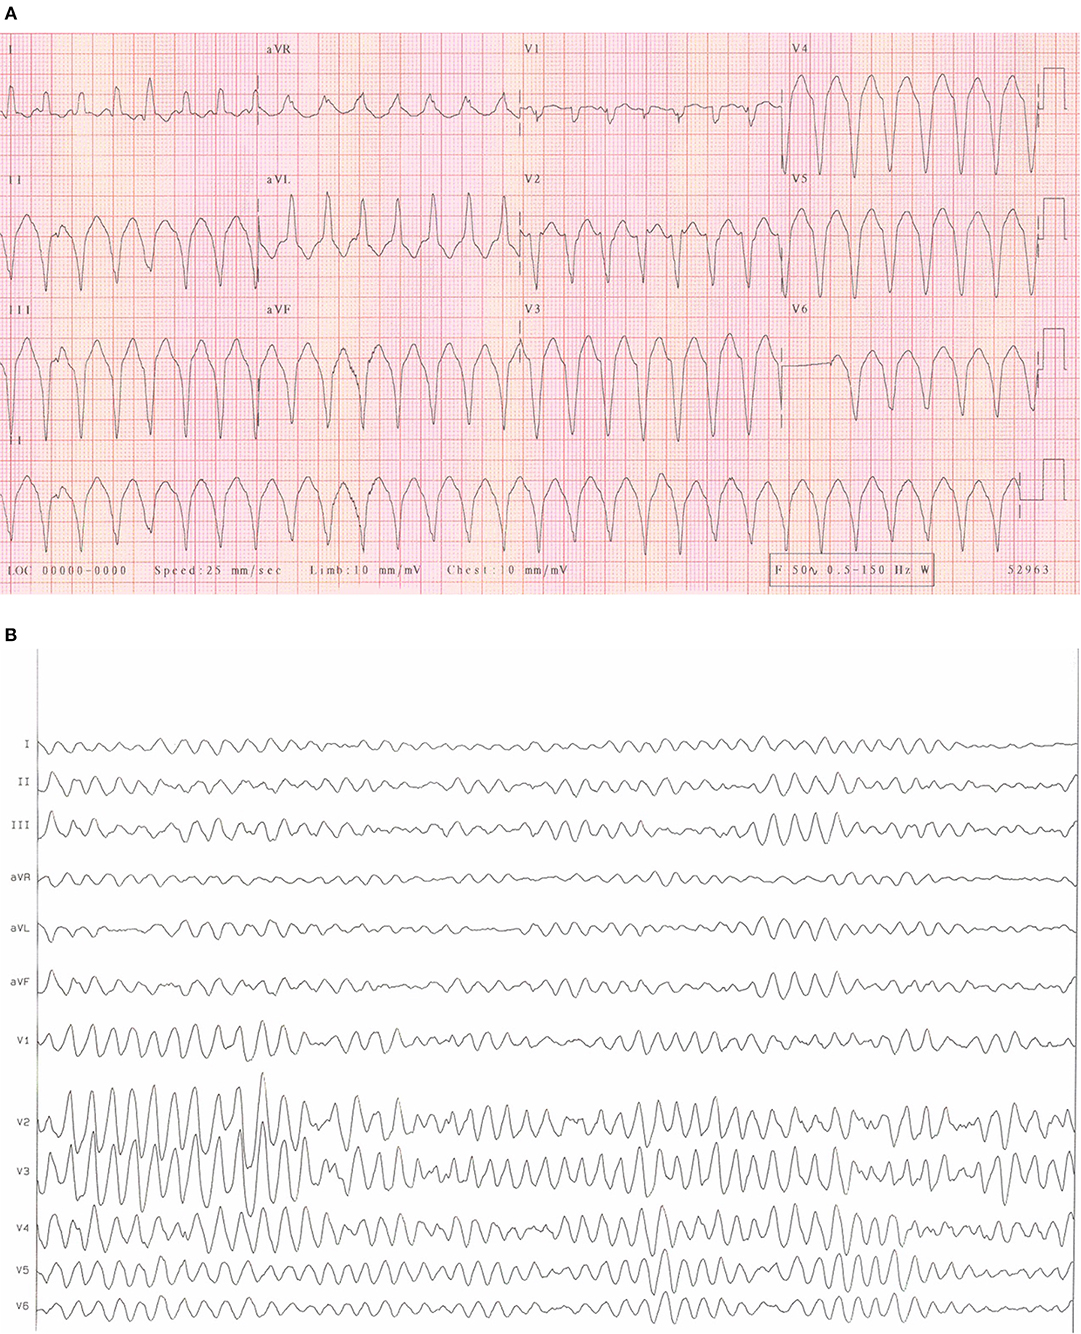 Frontiers | Arrhythmic Burden and Outcomes in Pulmonary